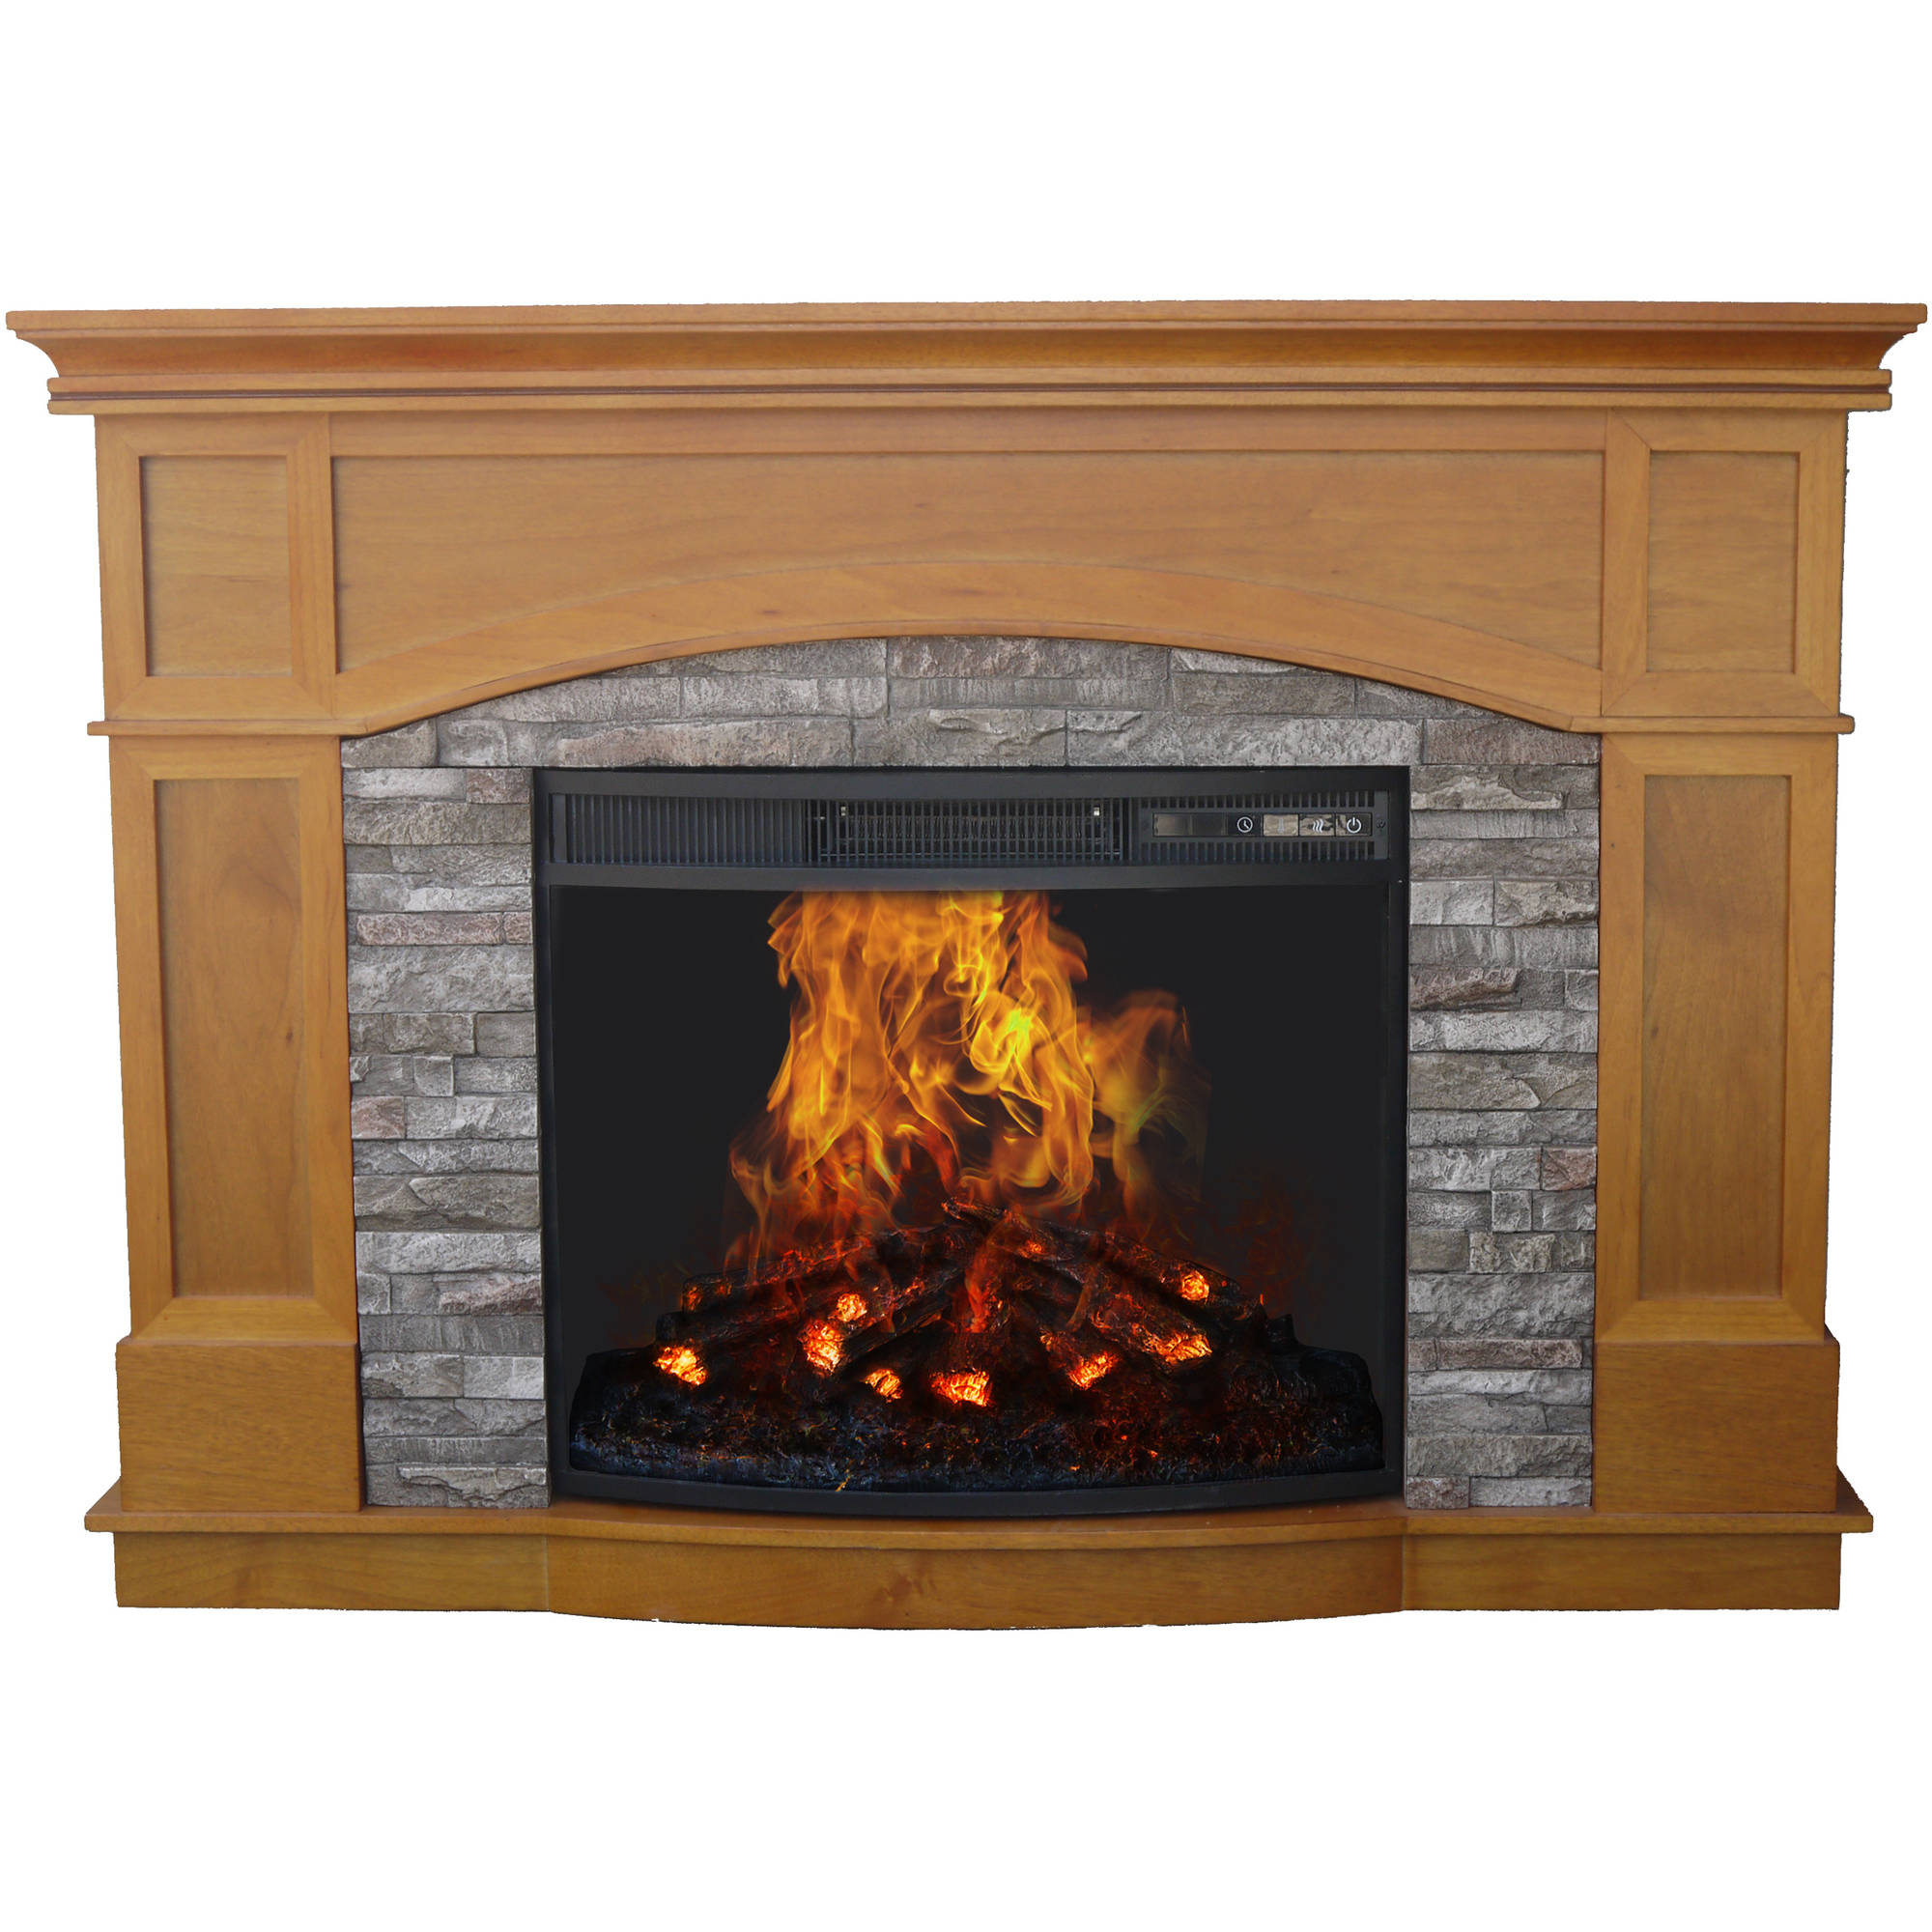 "Decor Flame Electric Fireplace with 50"" Mantle"